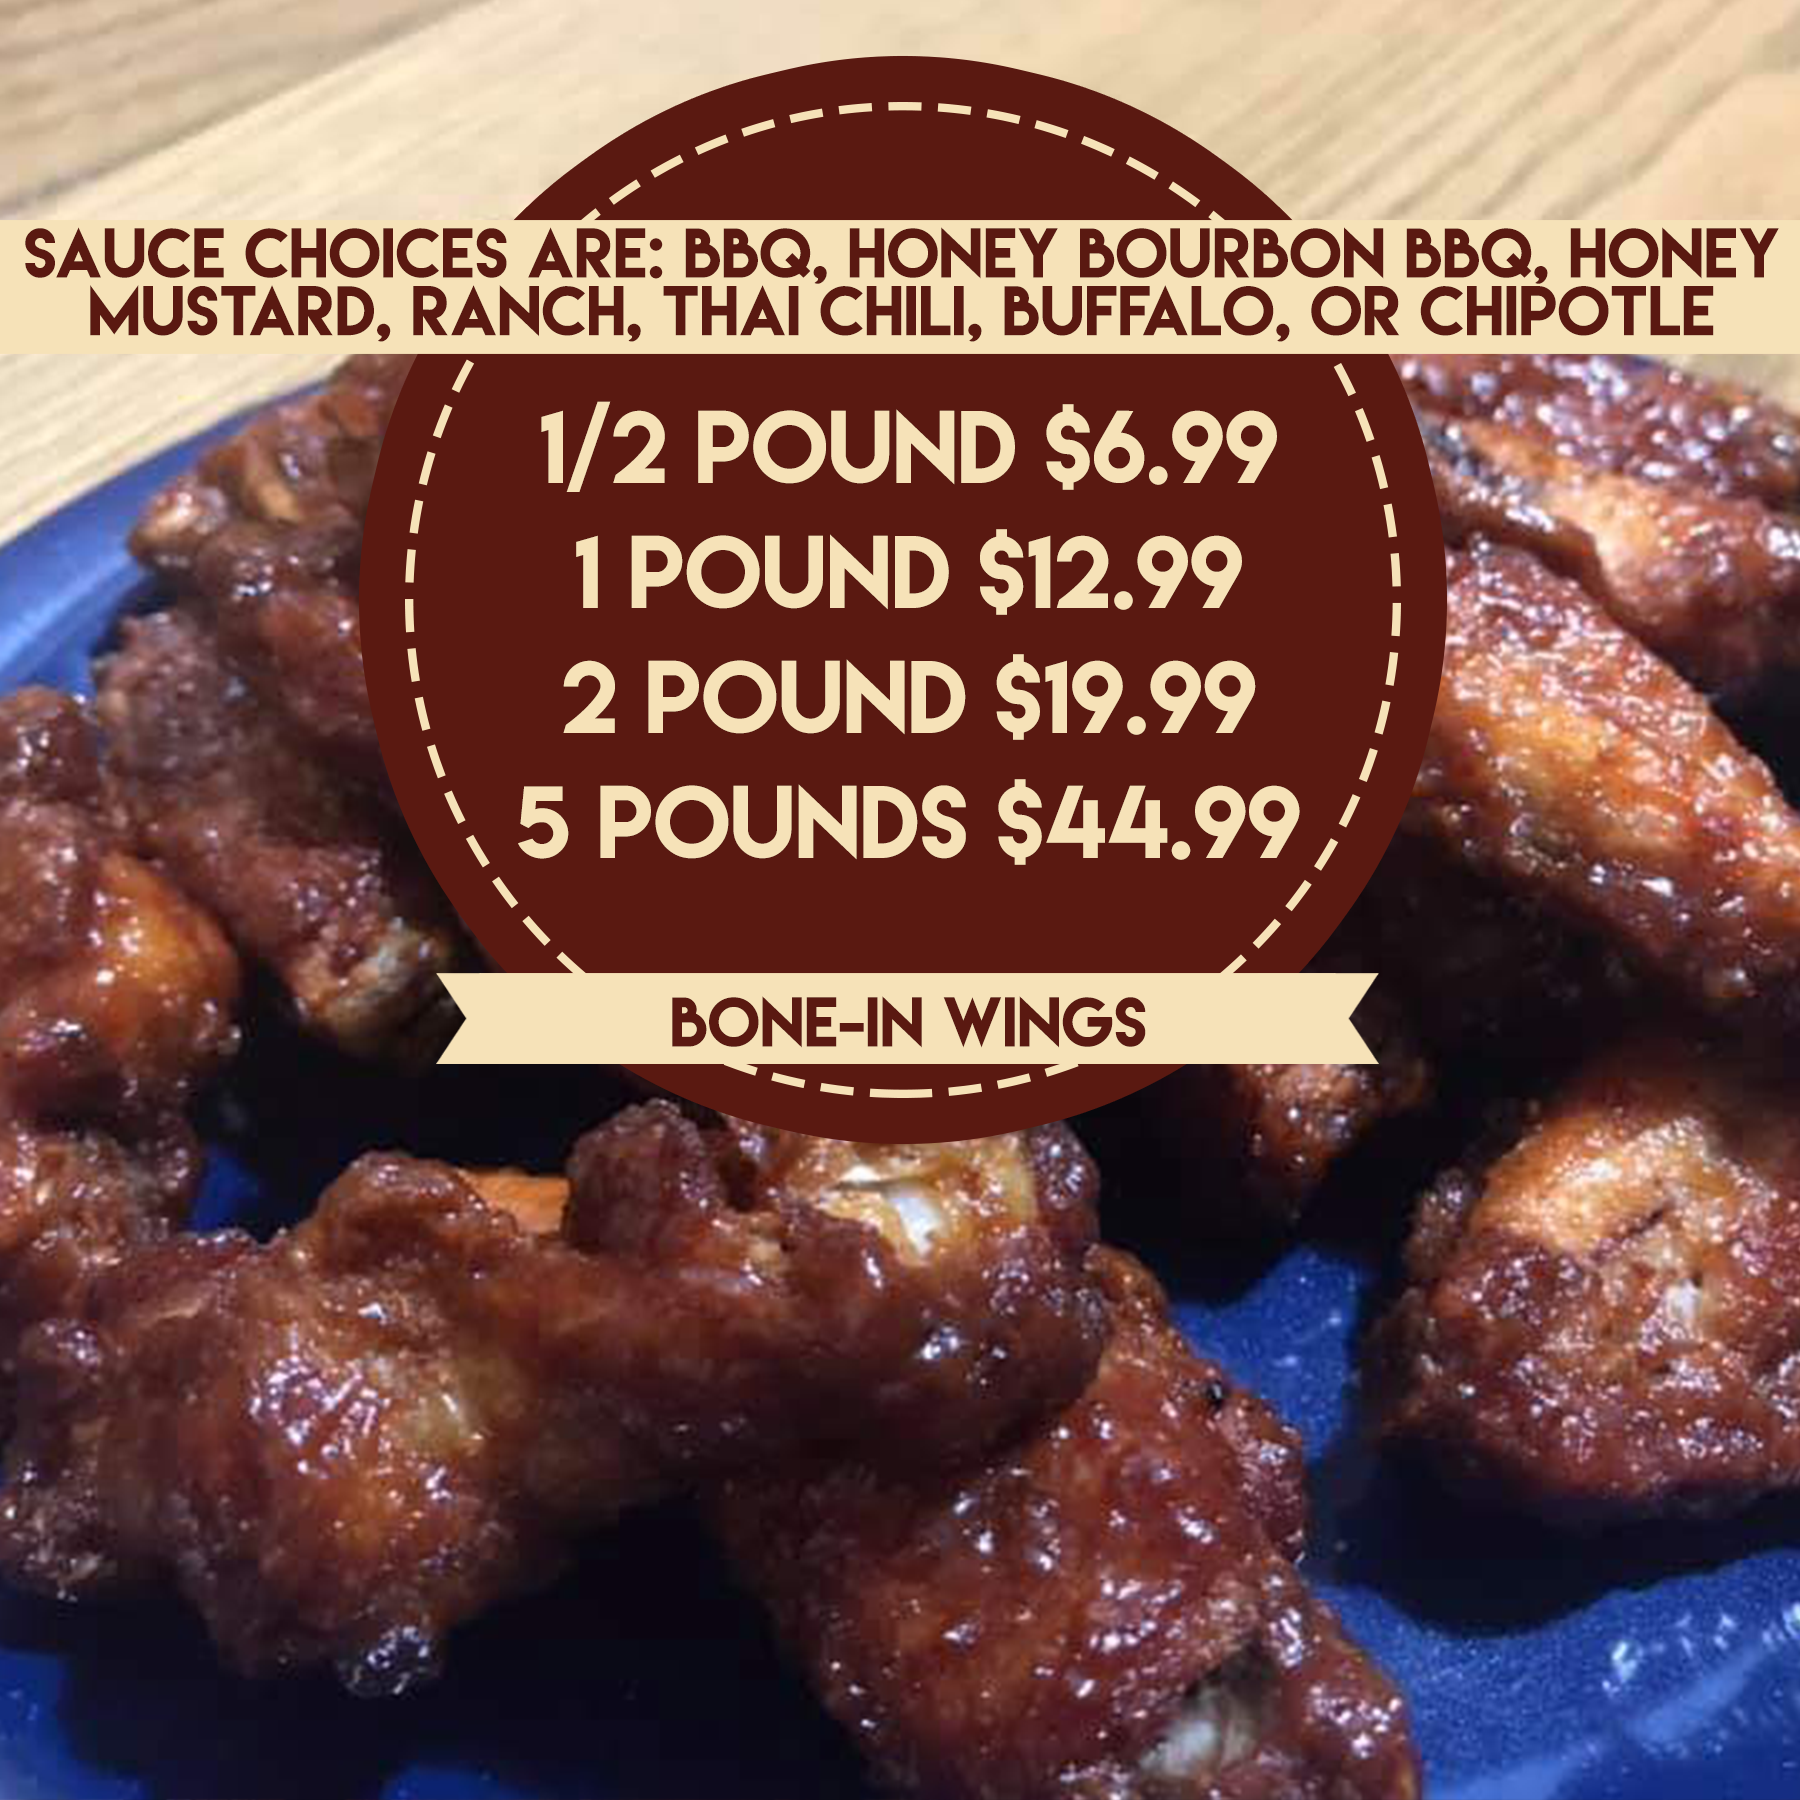 Sauce choices are BBQ, Honey Bourbon BBQ, Honey Mustard, Ranch, Thai Chili, Buffalo, or Chipotle ½ pound $6.99 1 pound $12.99 2 pounds $19.99 5 pounds $44.99 Bone-in wings